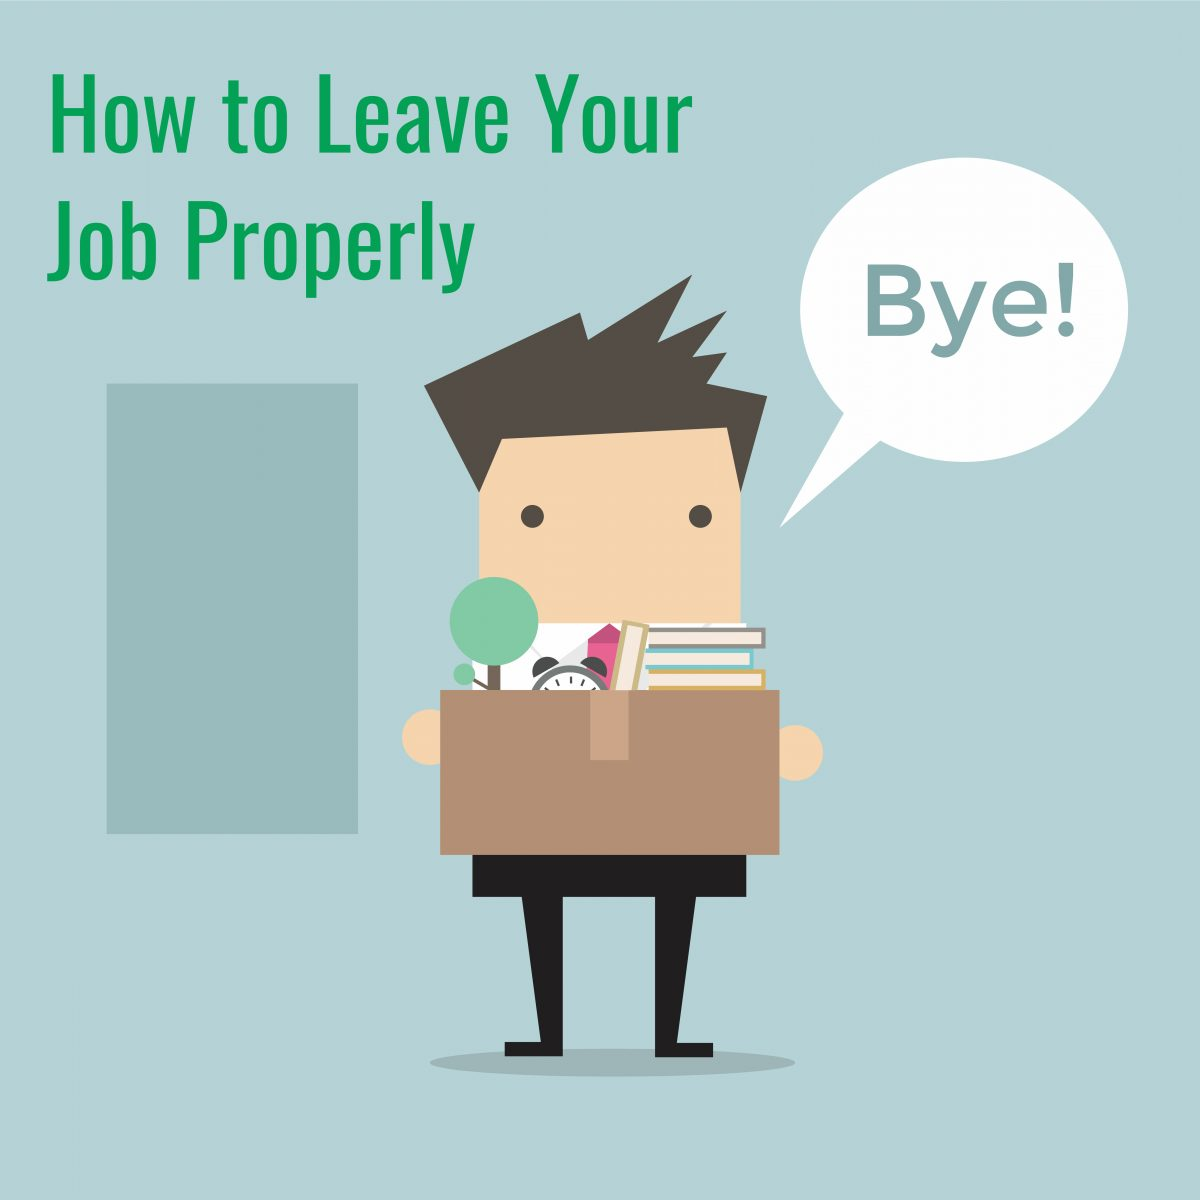 How to Leave Your Job Properly, three tips!